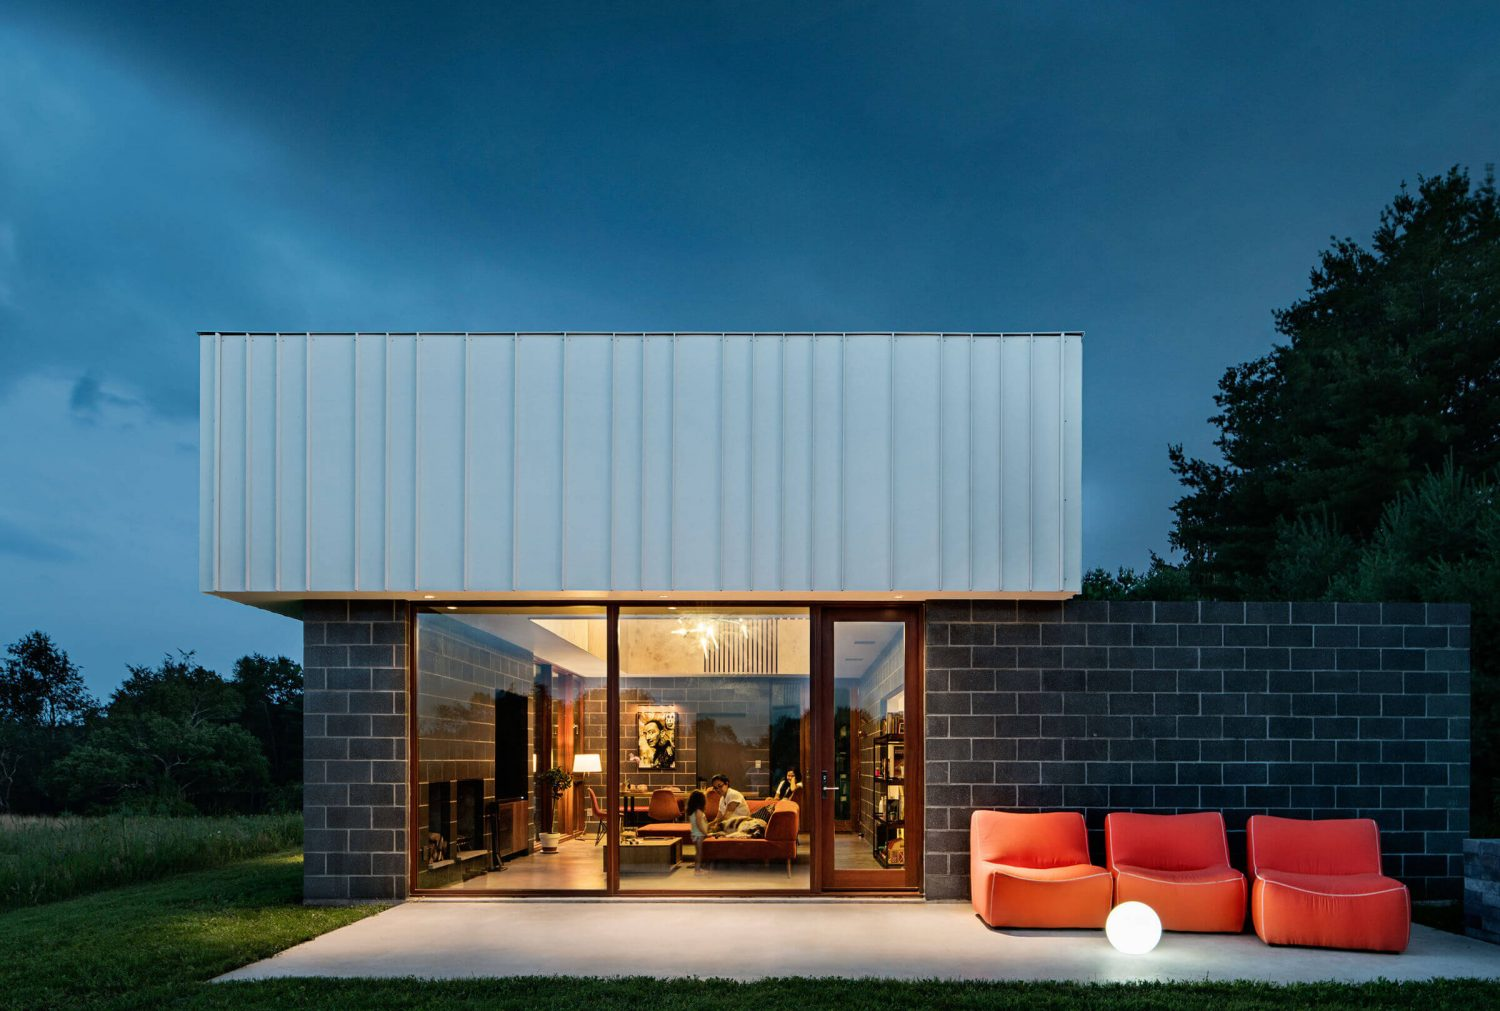 Catskills House by J_spy Architecture and Design